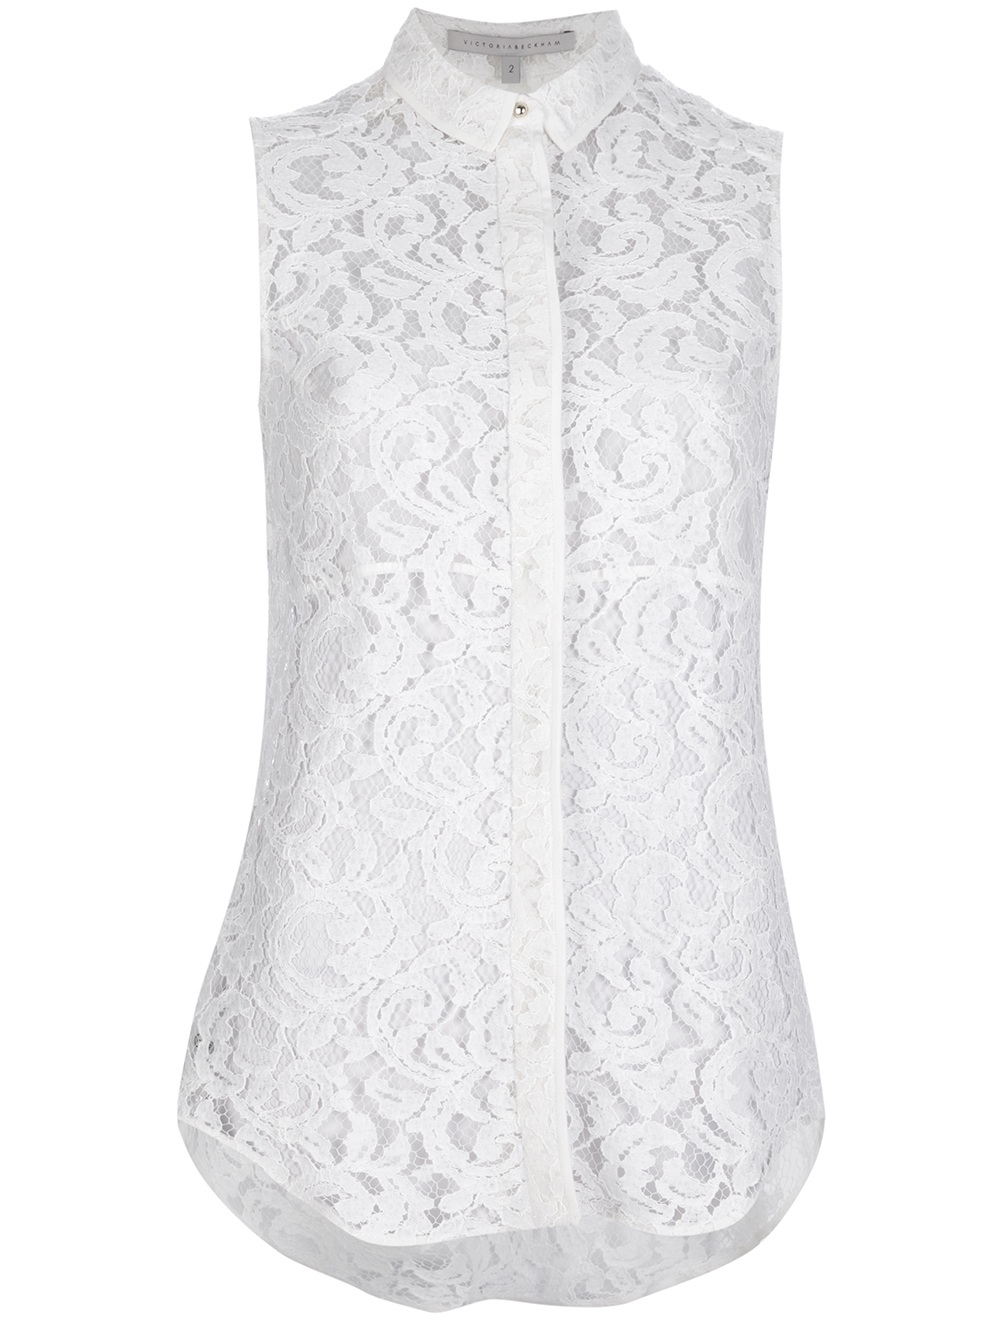 Victoria beckham Lace Sleeveless Blouse in White | Lyst